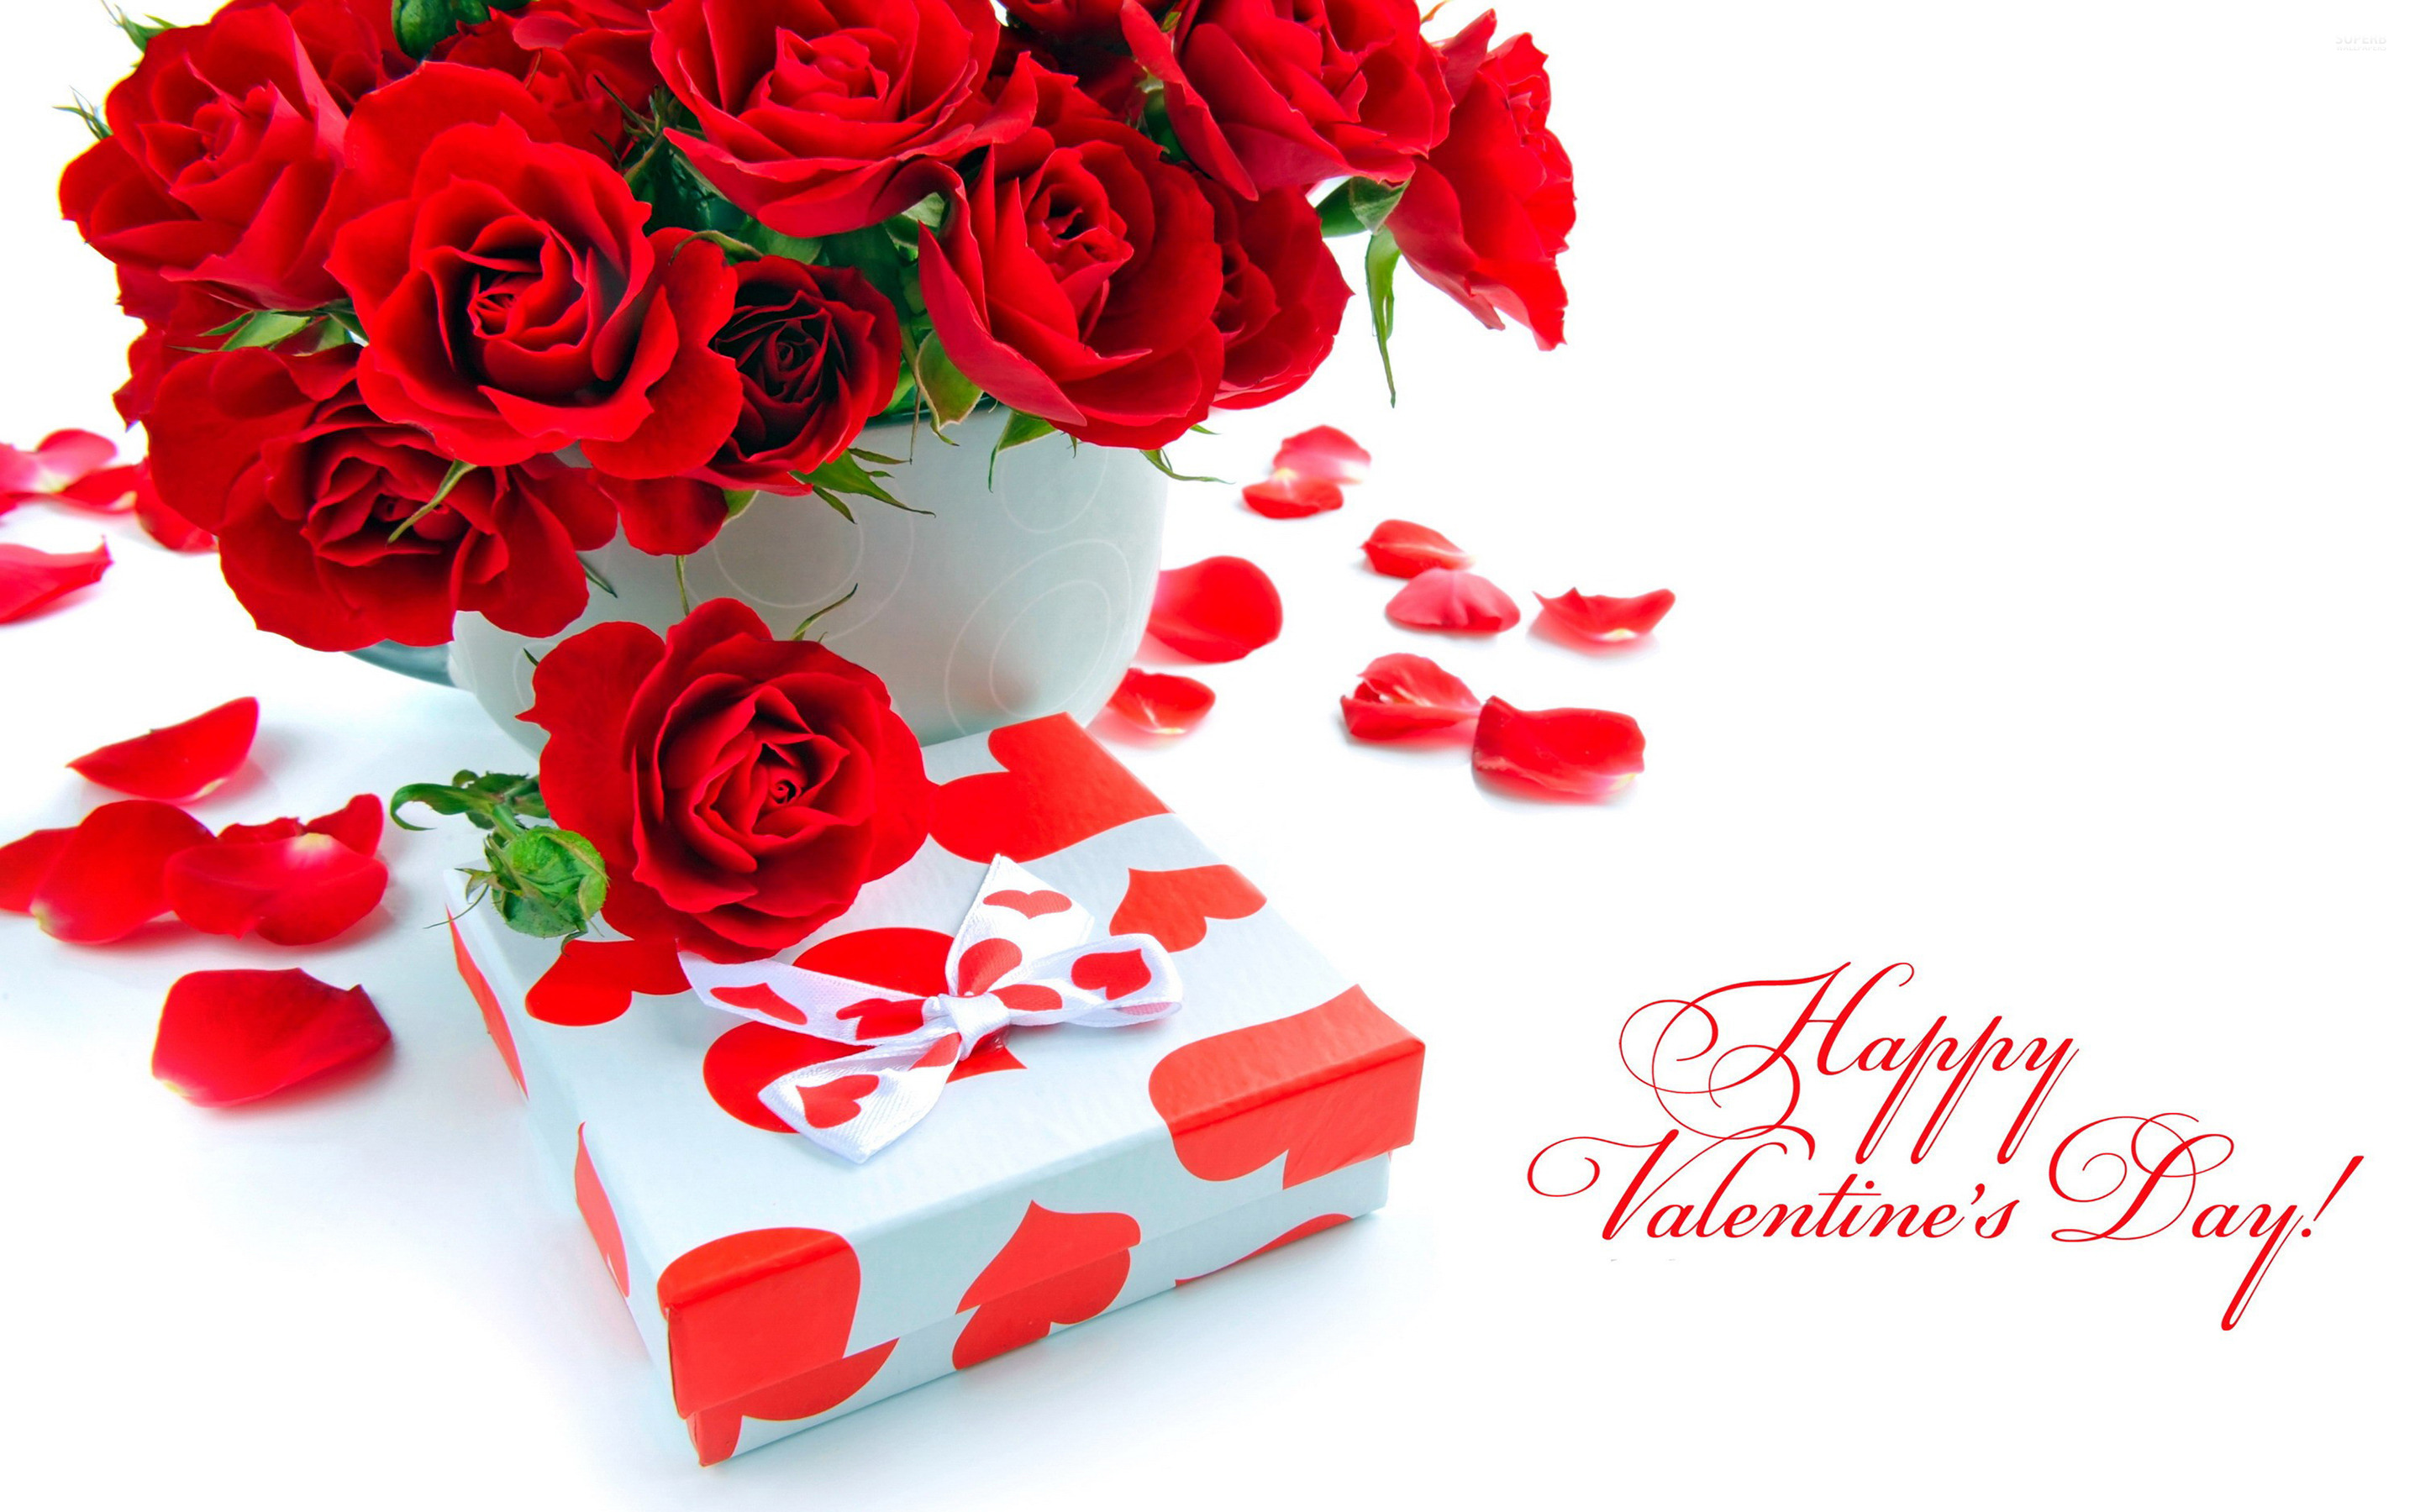 happy-valentines-day-hd-wallpaper | wallpaper.wiki